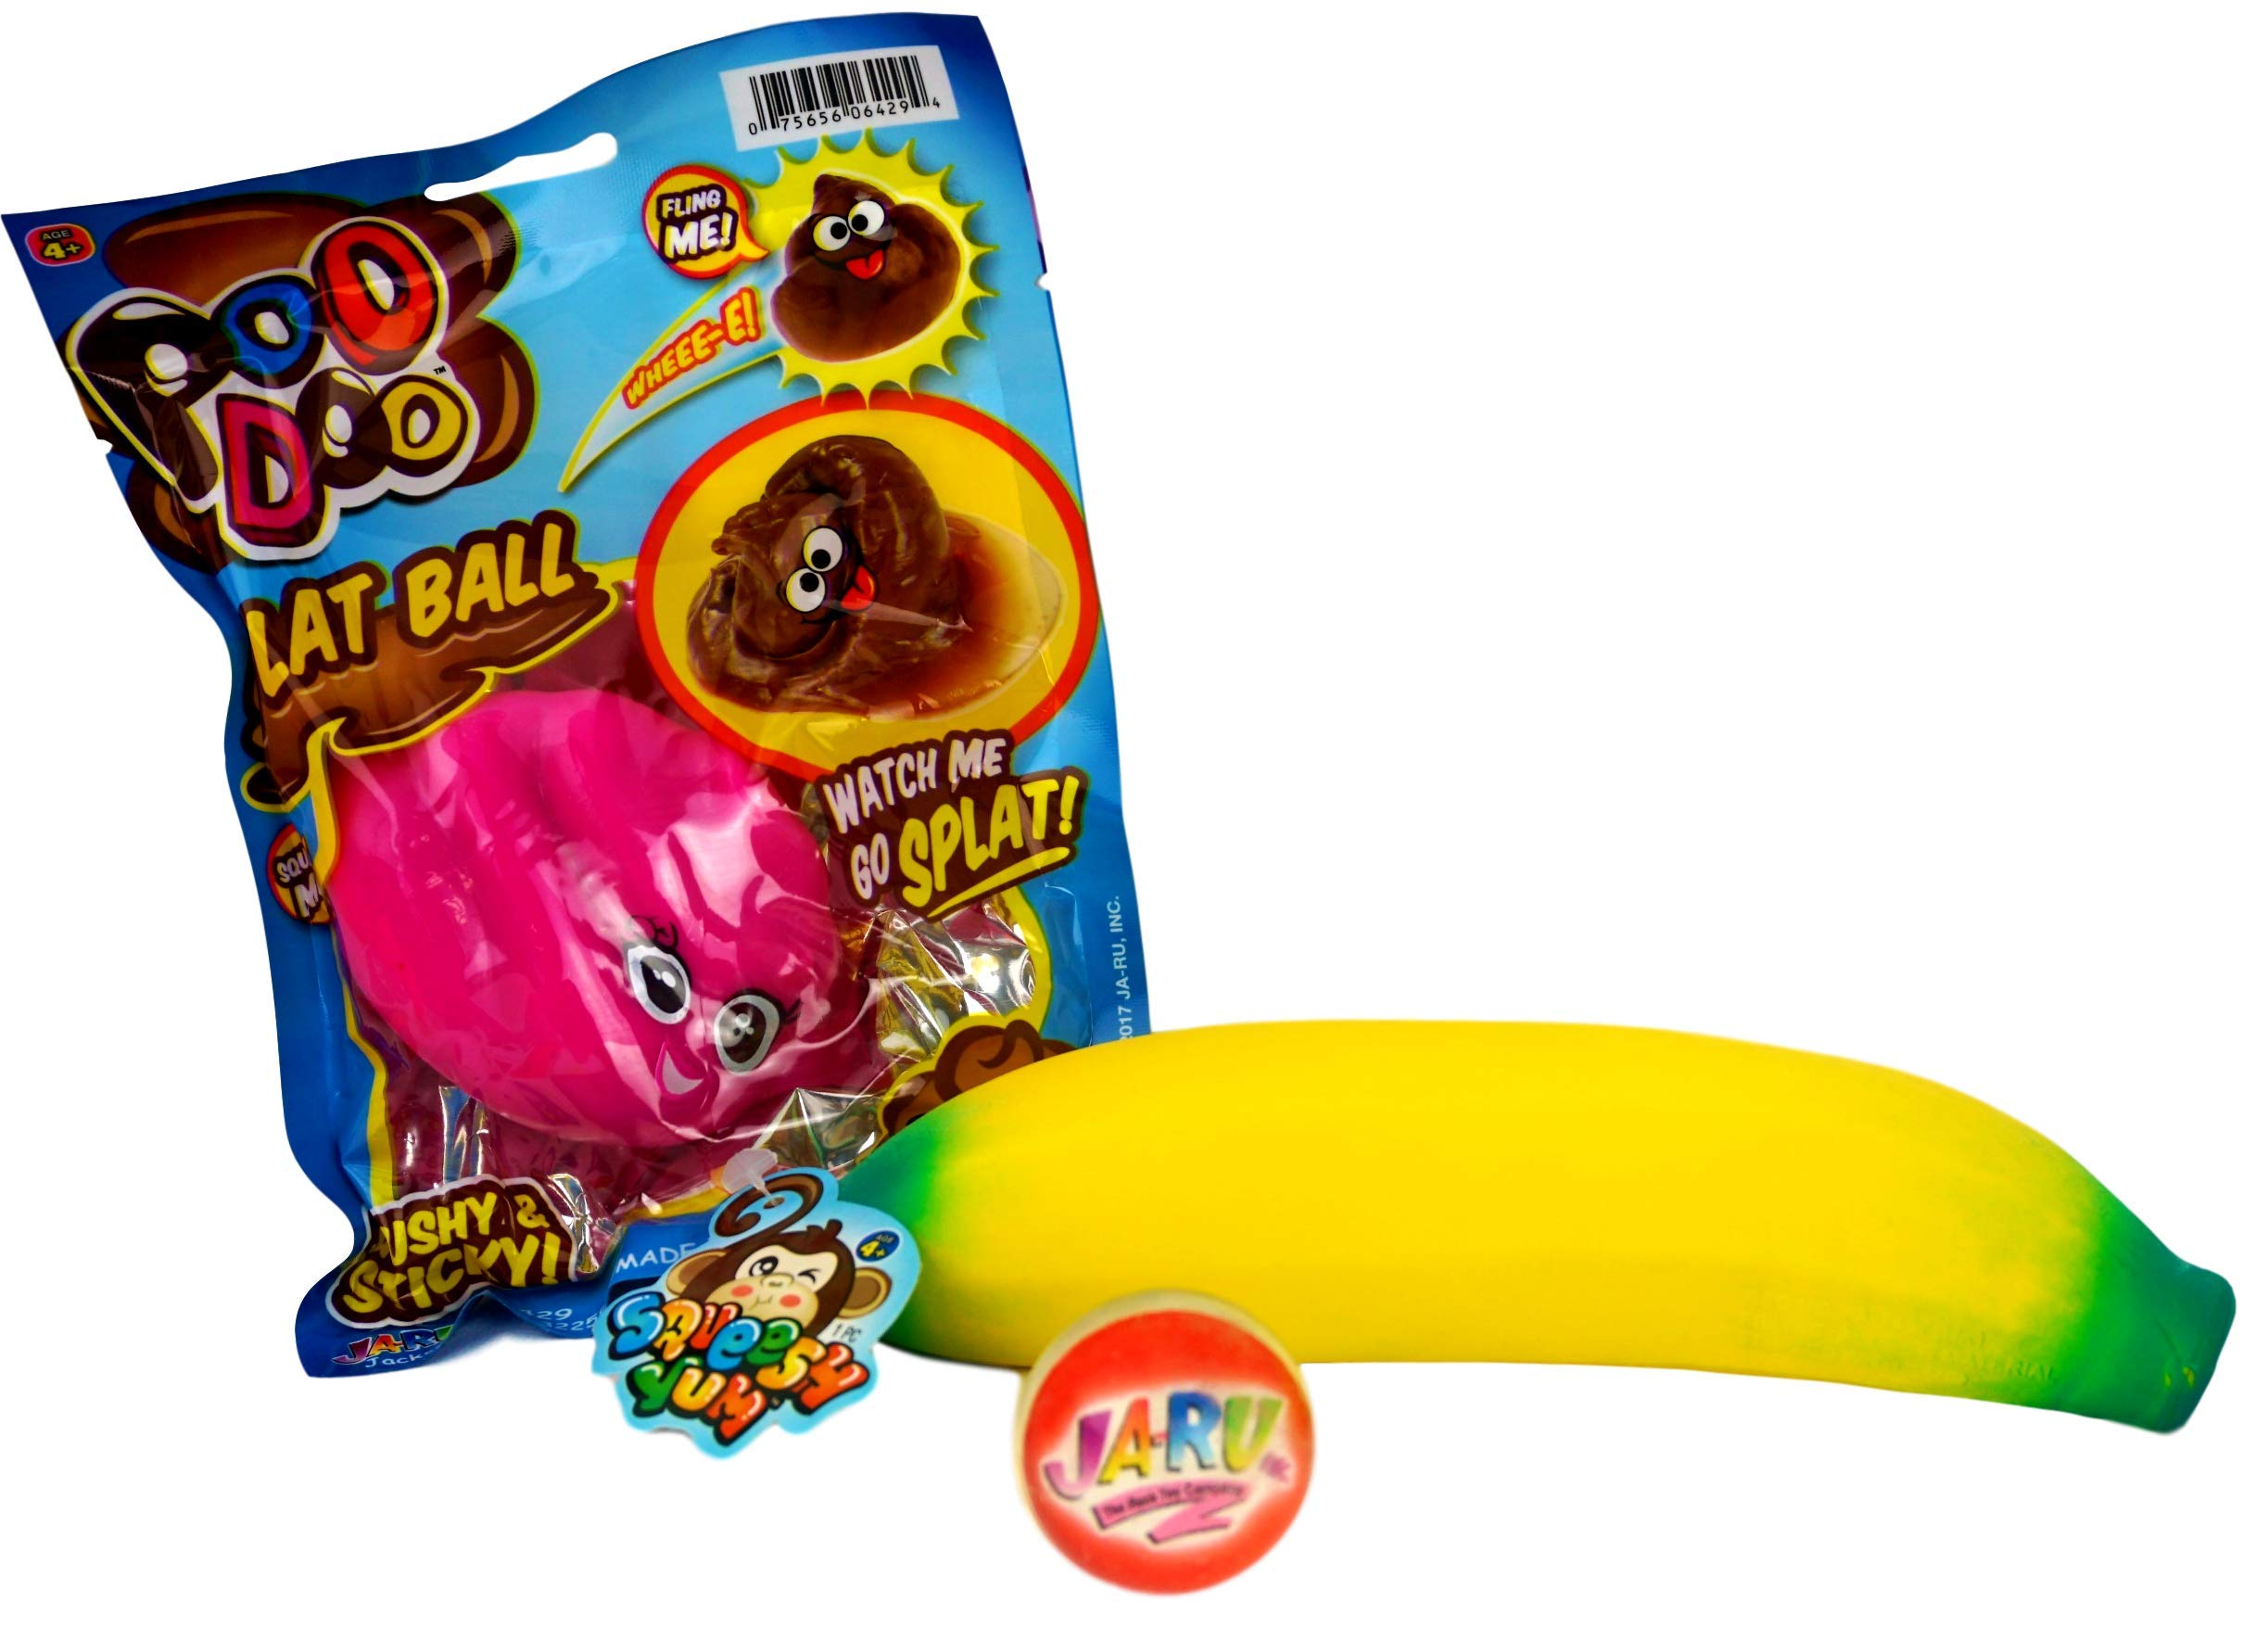 JA-RU Stretchy Banana and Pink Poo Splat Ball Bundle (2 Pack) Stress Relief Toy Party Favor for Kids and Adults. Sensory Toys for Autistic Children I 3340-6429Pkp